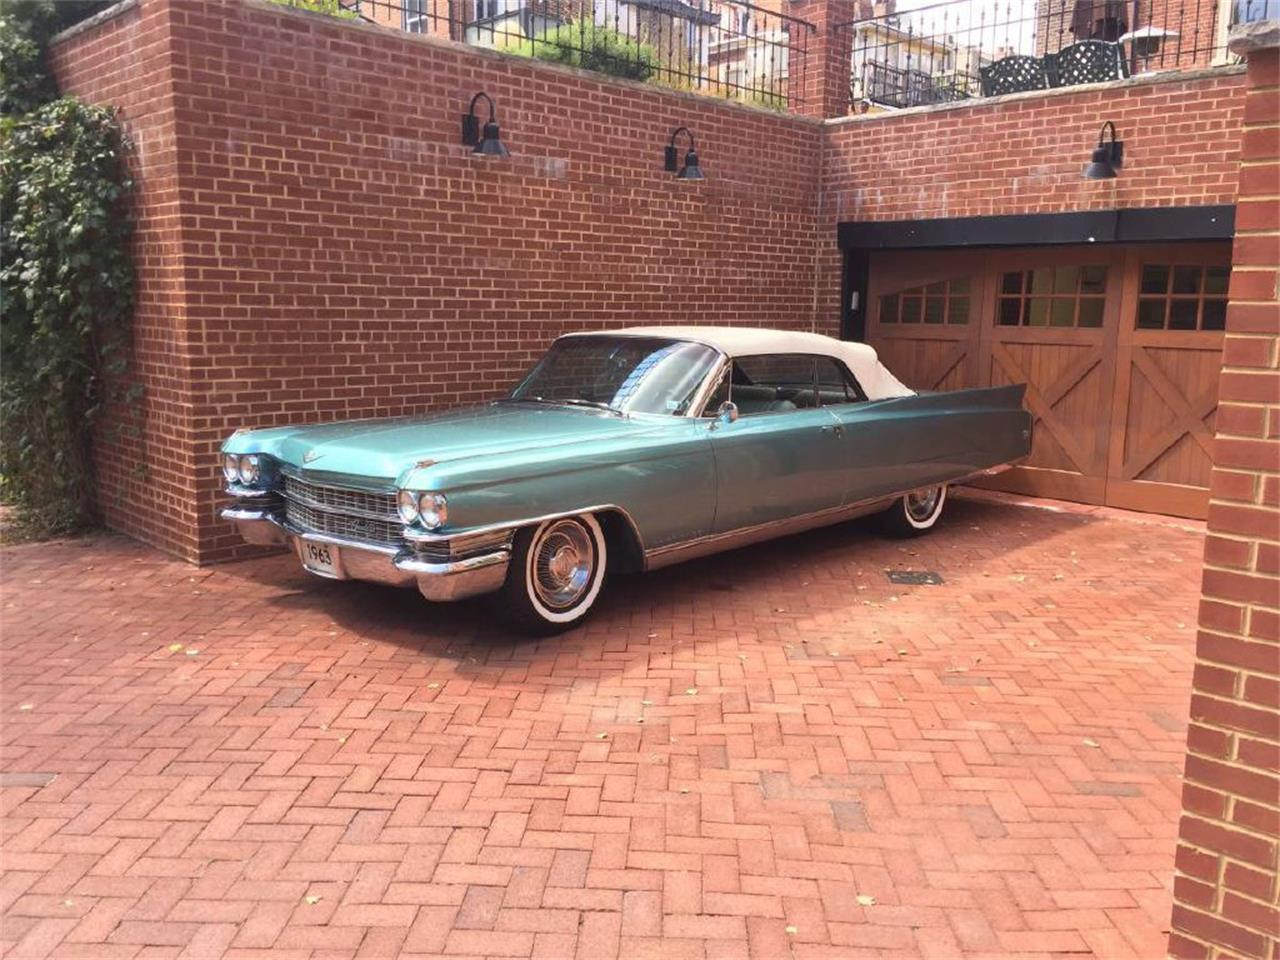 1963 Cadillac Eldorado for sale in West Pittston, PA – photo 6